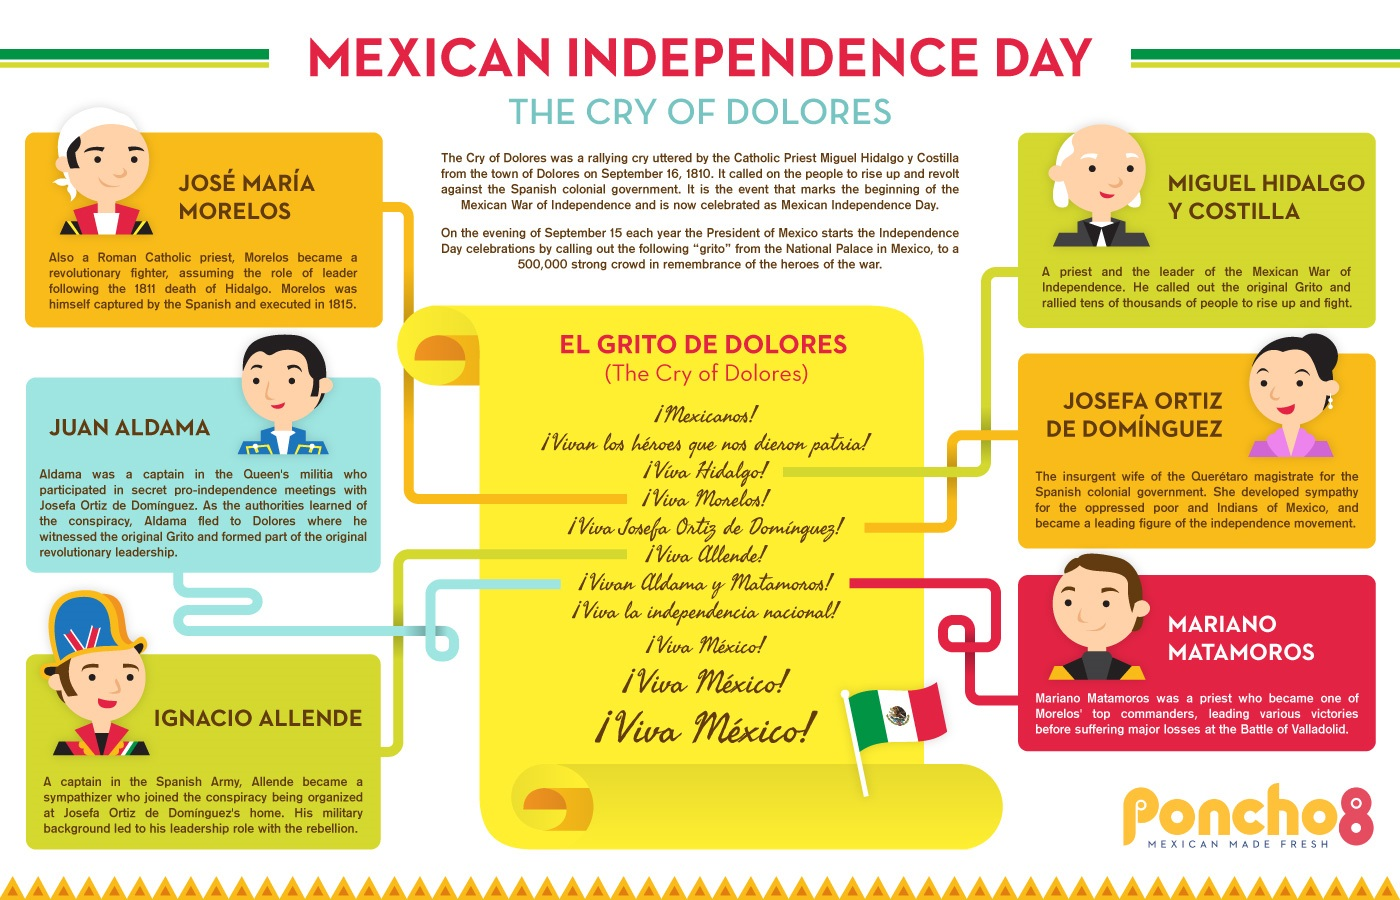 The Best Resources For Learning About Mexico's Independence Day ...